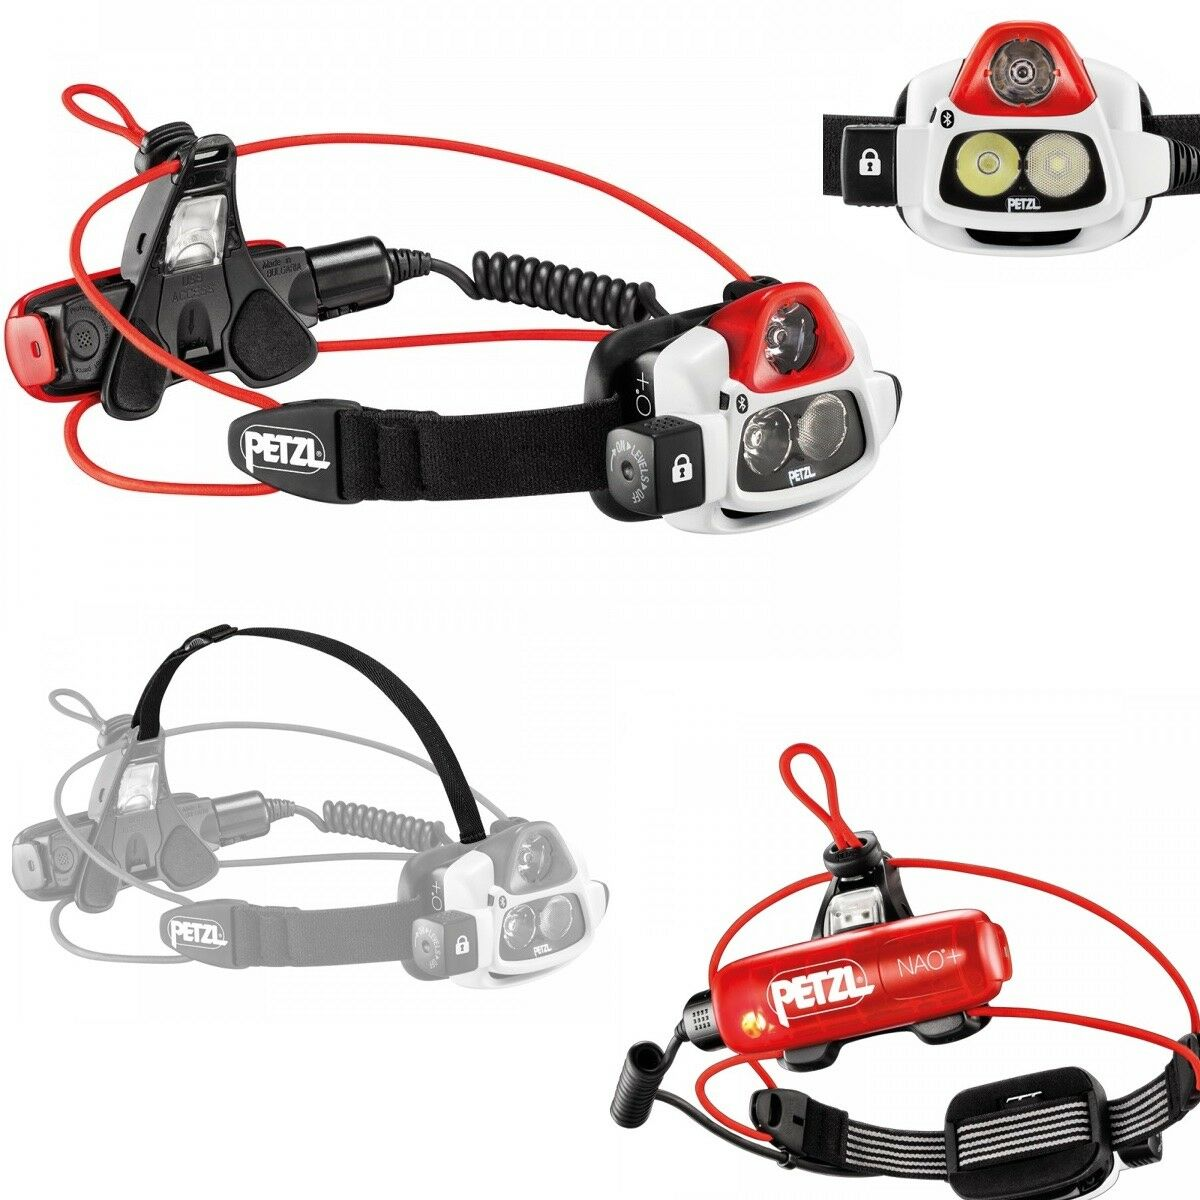 Petzl Nao Led Stirlampe IPX4 Blautooth Smart - max. 750 LuSie